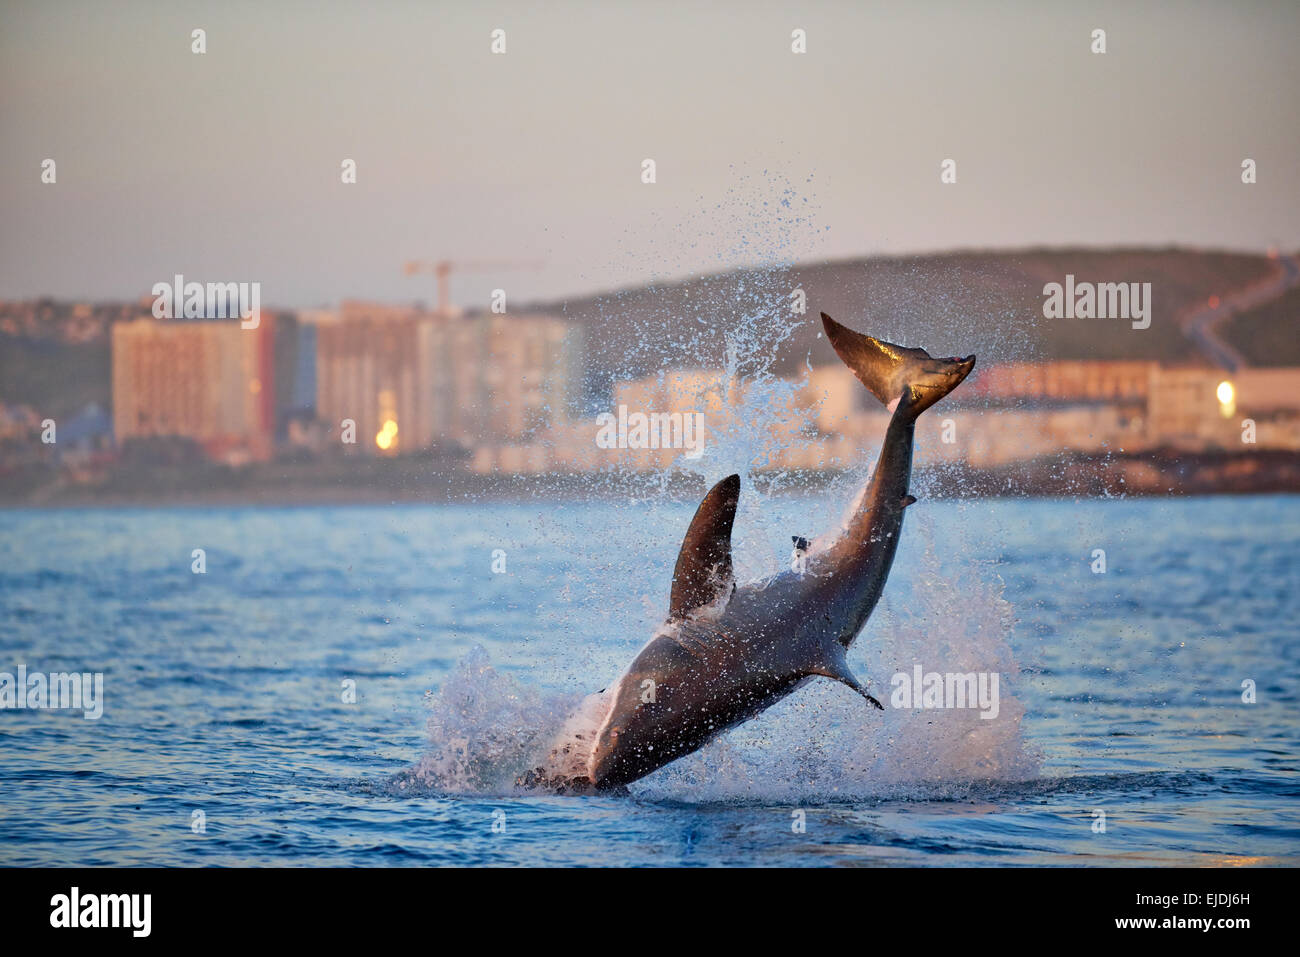 Great White Sharks Jumping Stock Photos & Great White Sharks